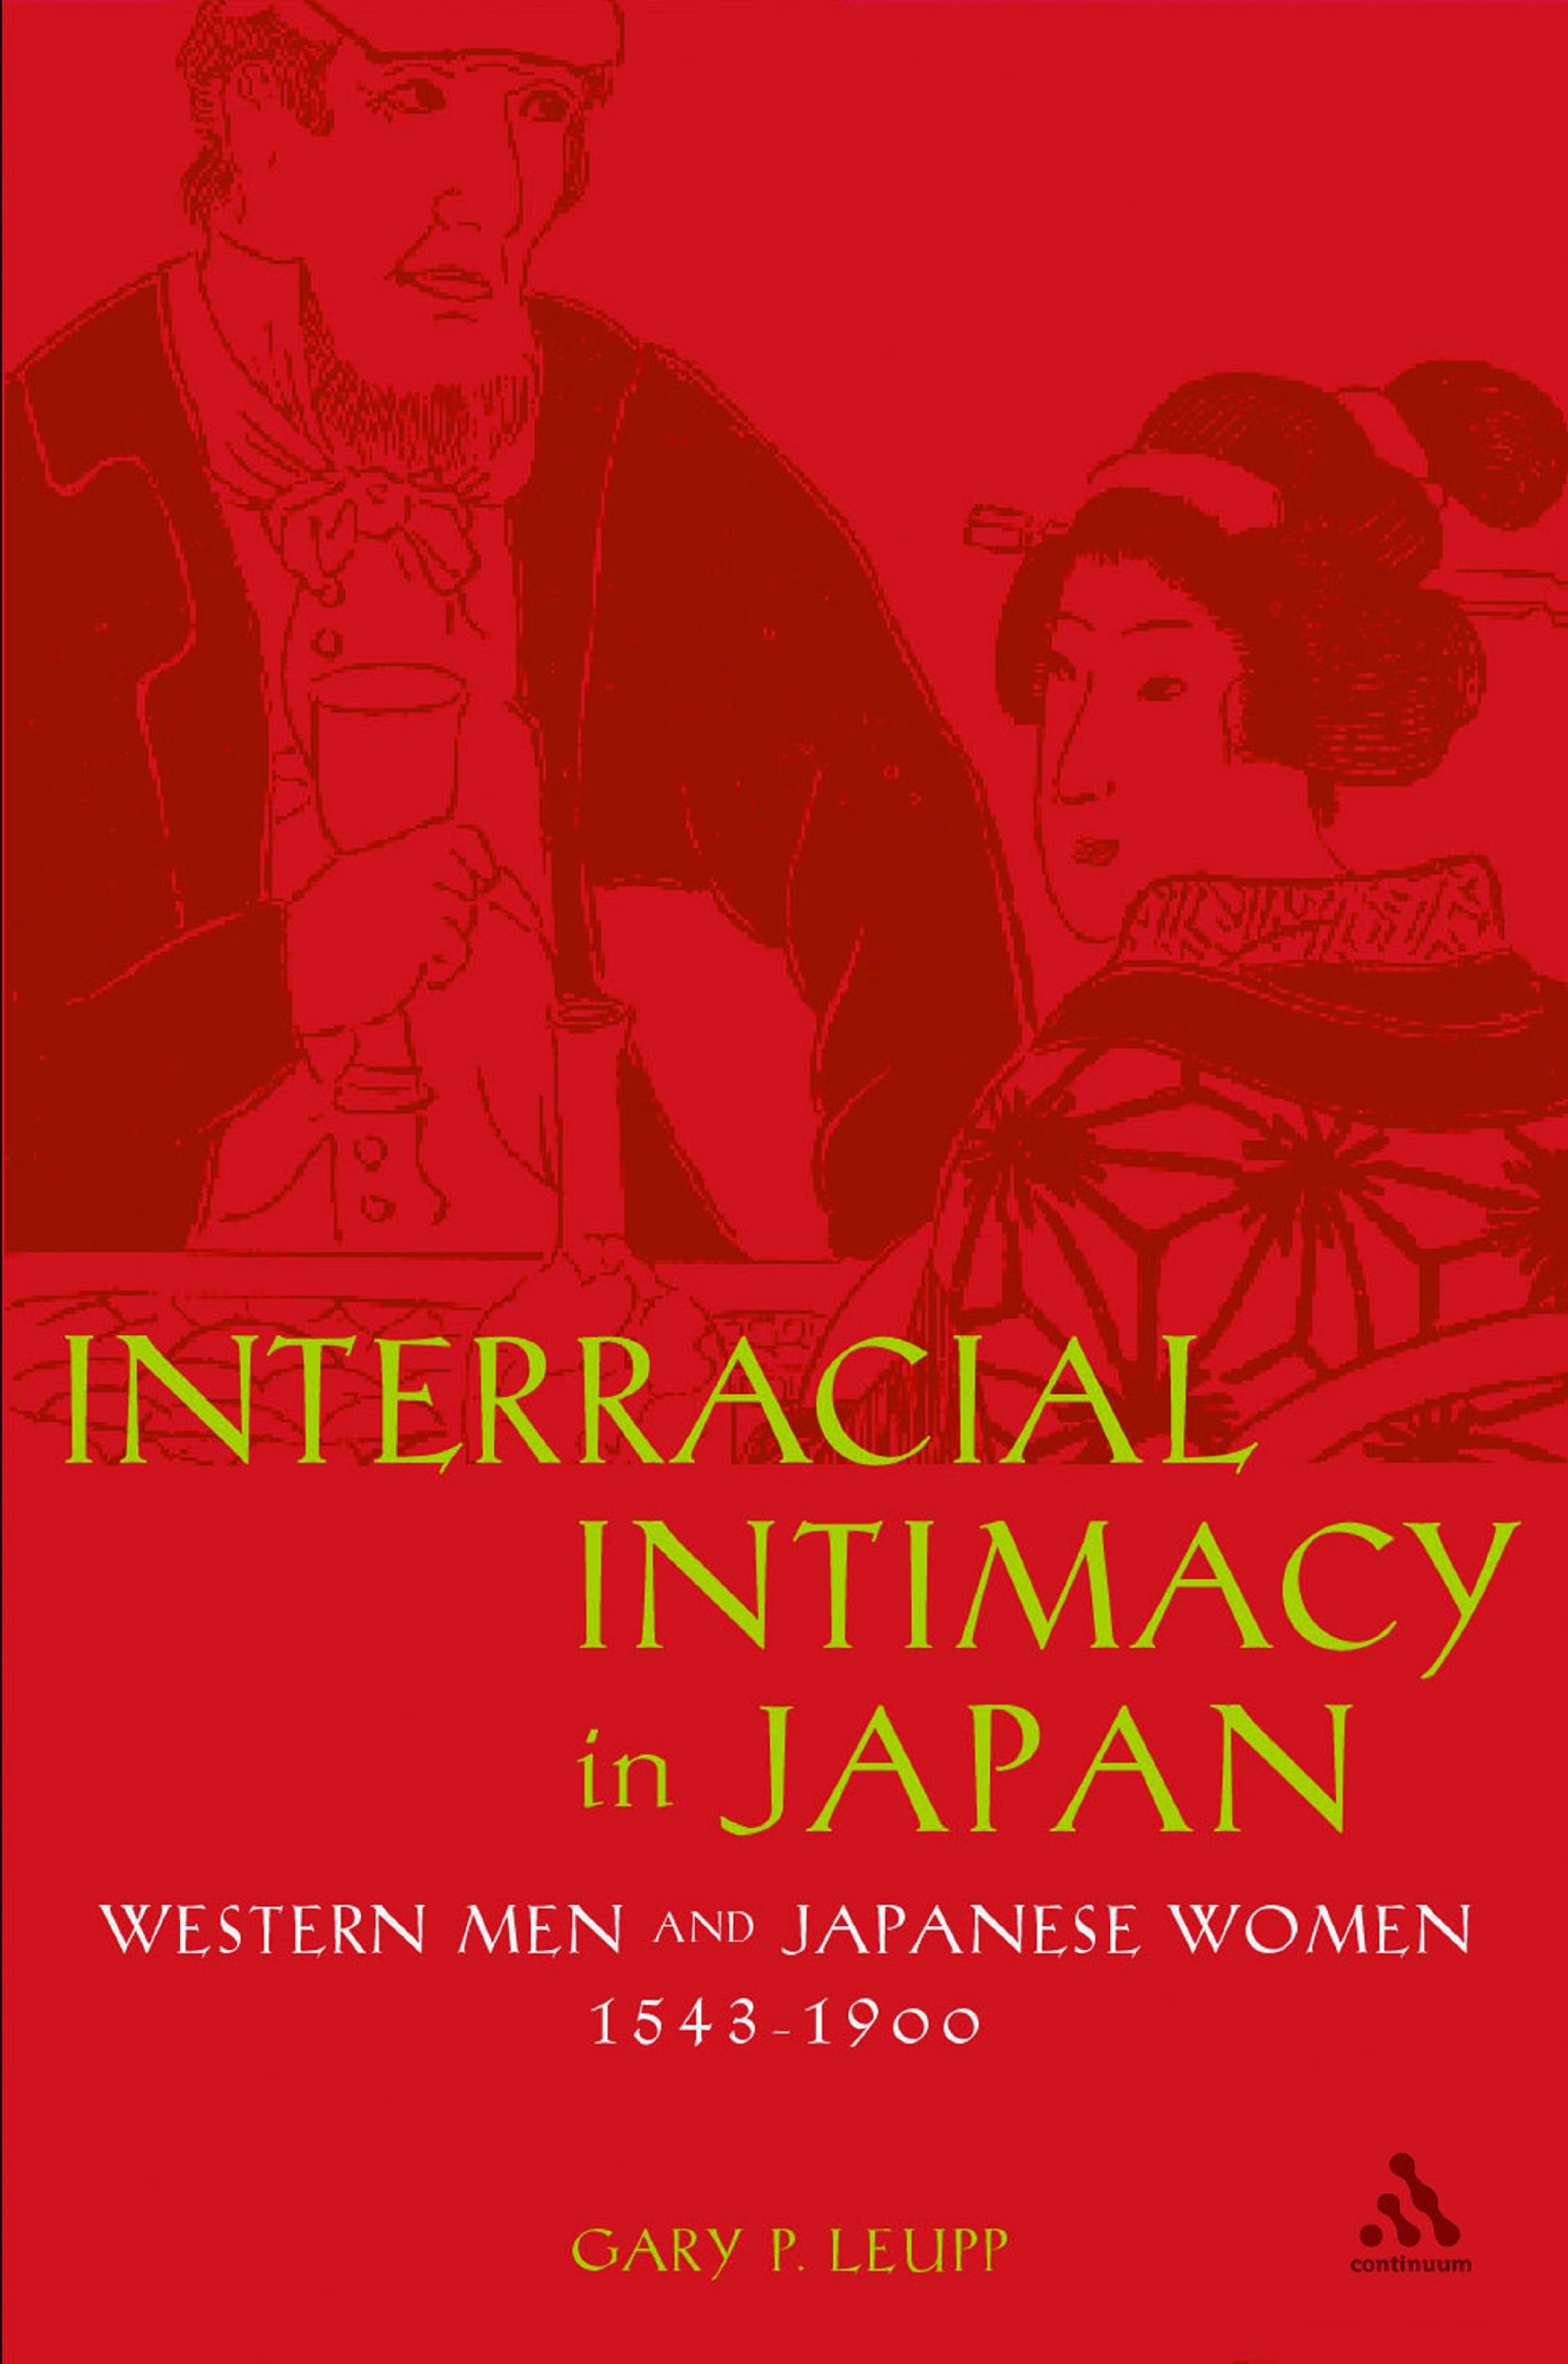 Interracial Intimacy in Japan: Western Men and Japanese Women, 1543-1900  Hardcover – Aug 13 2003